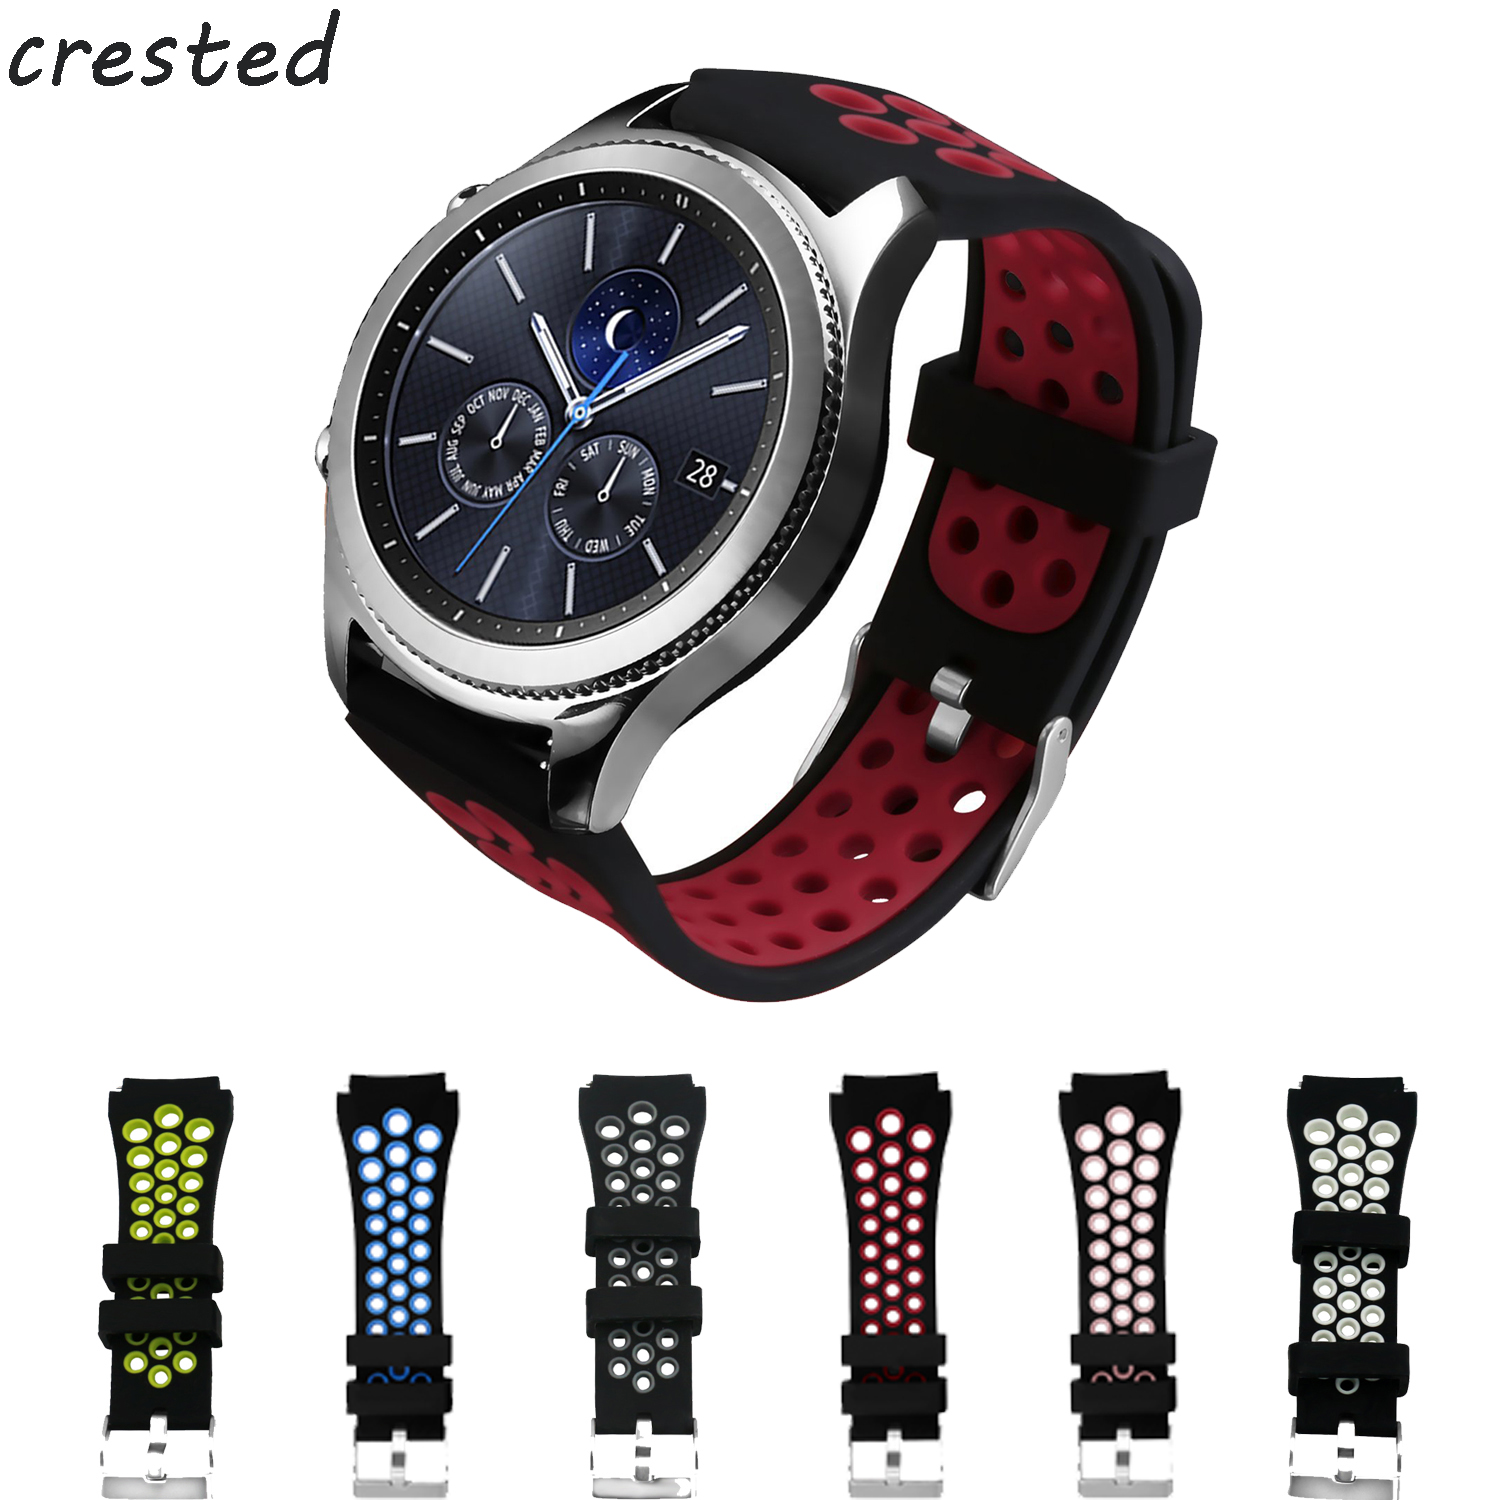 CRESTED sport silicone strap for samsung gear s3 Classic/Frontier replacement rubber band watch strap for samsung gear S3 crested sport silicone strap for samsung gear s3 classic frontier replacement rubber band watch strap for samsung gear s3